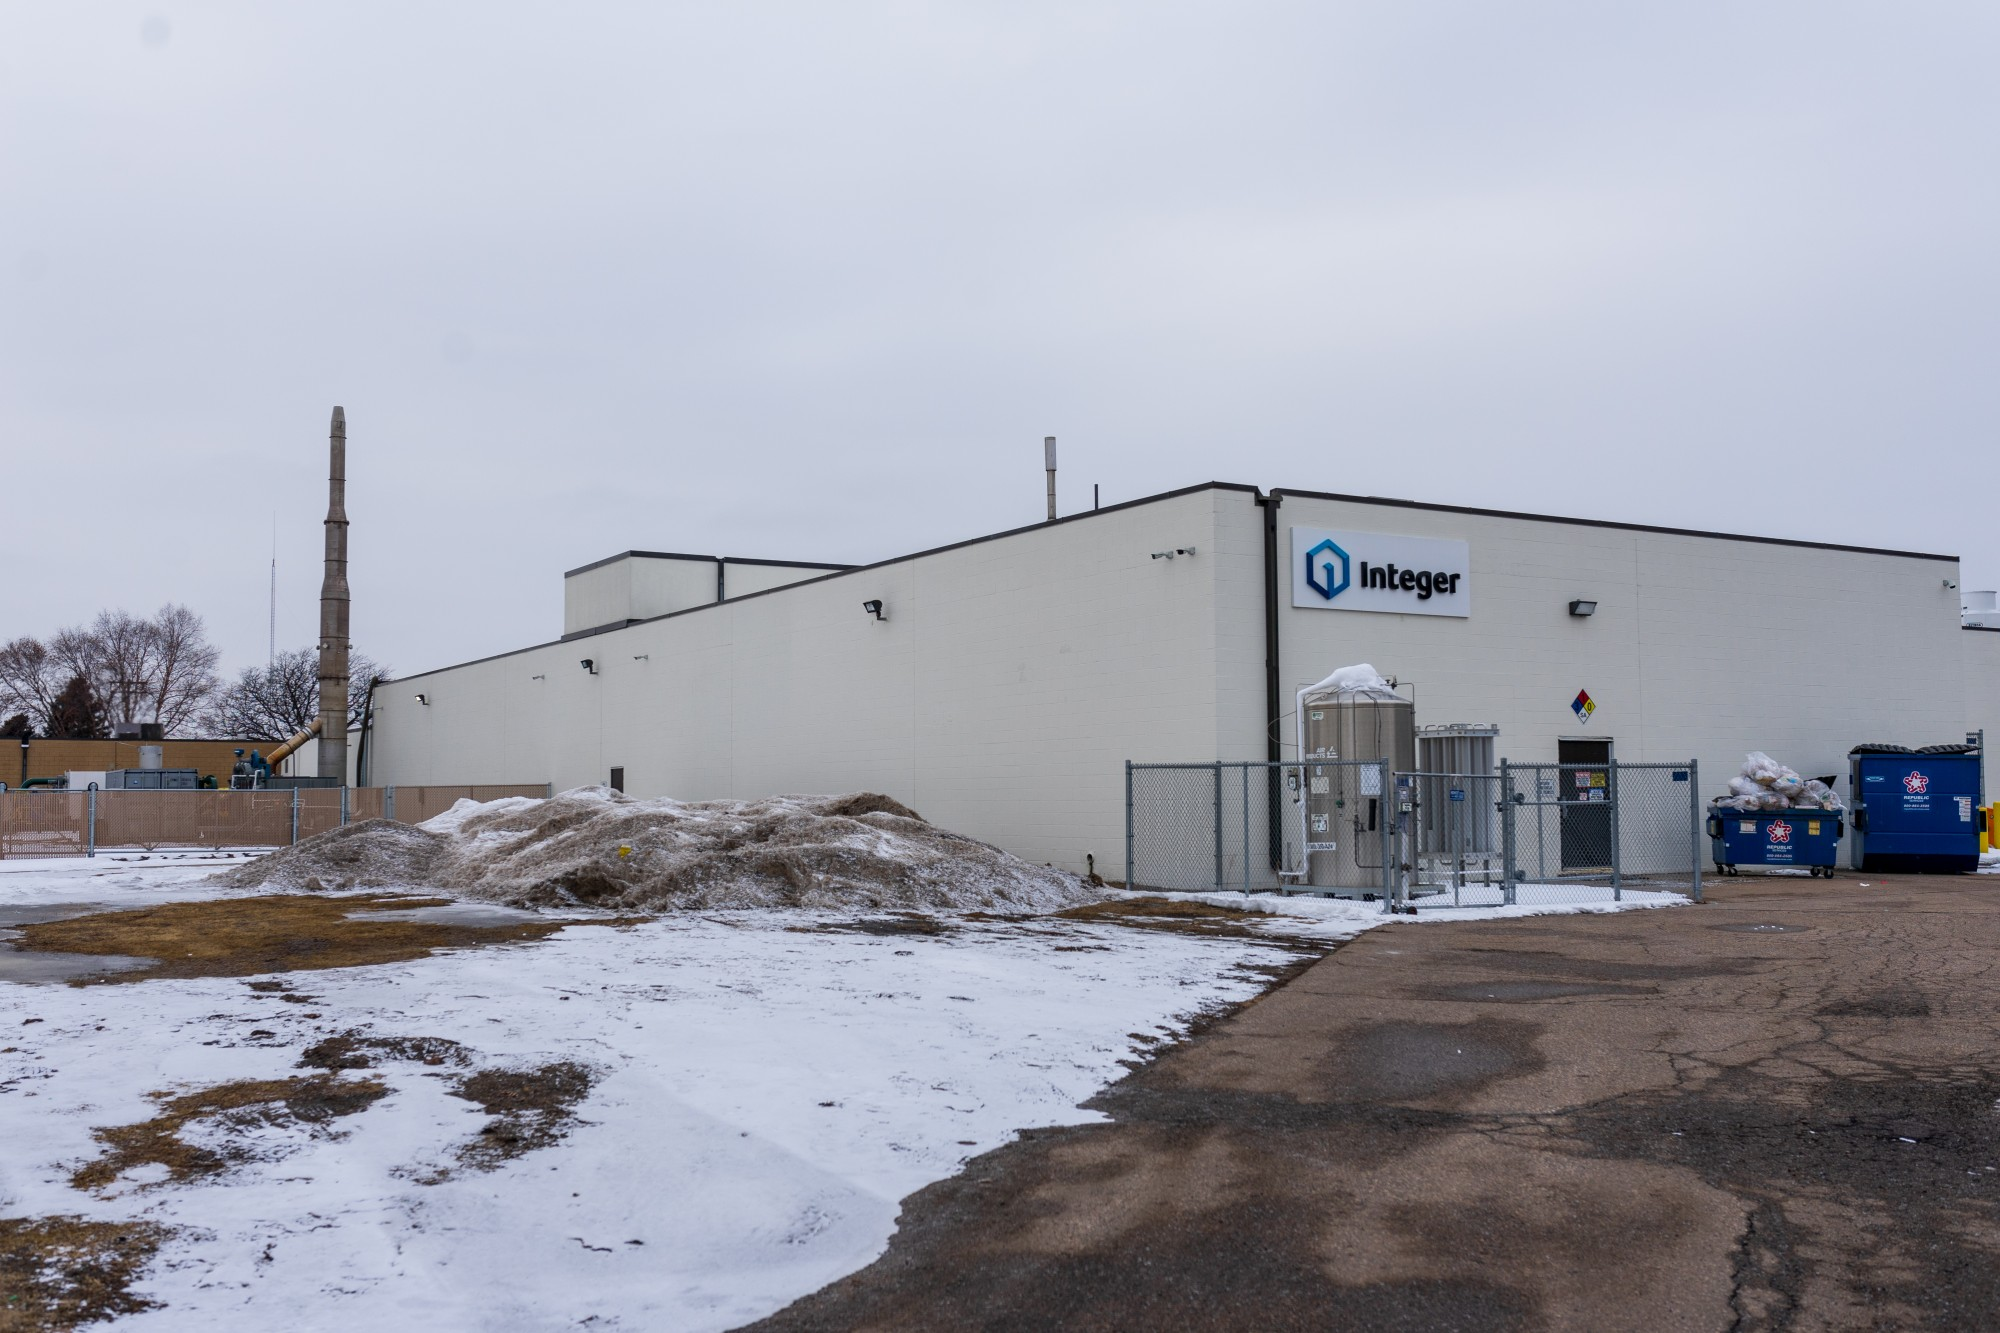 A building owned by Integer, a medical device outsource manufacturer, stands in Southeast Como on Friday, Feb. 7. The site has recently been identified as producing higher than acceptable levels of trichloroethylene (TCE), an industrial solvent and carcinogen.